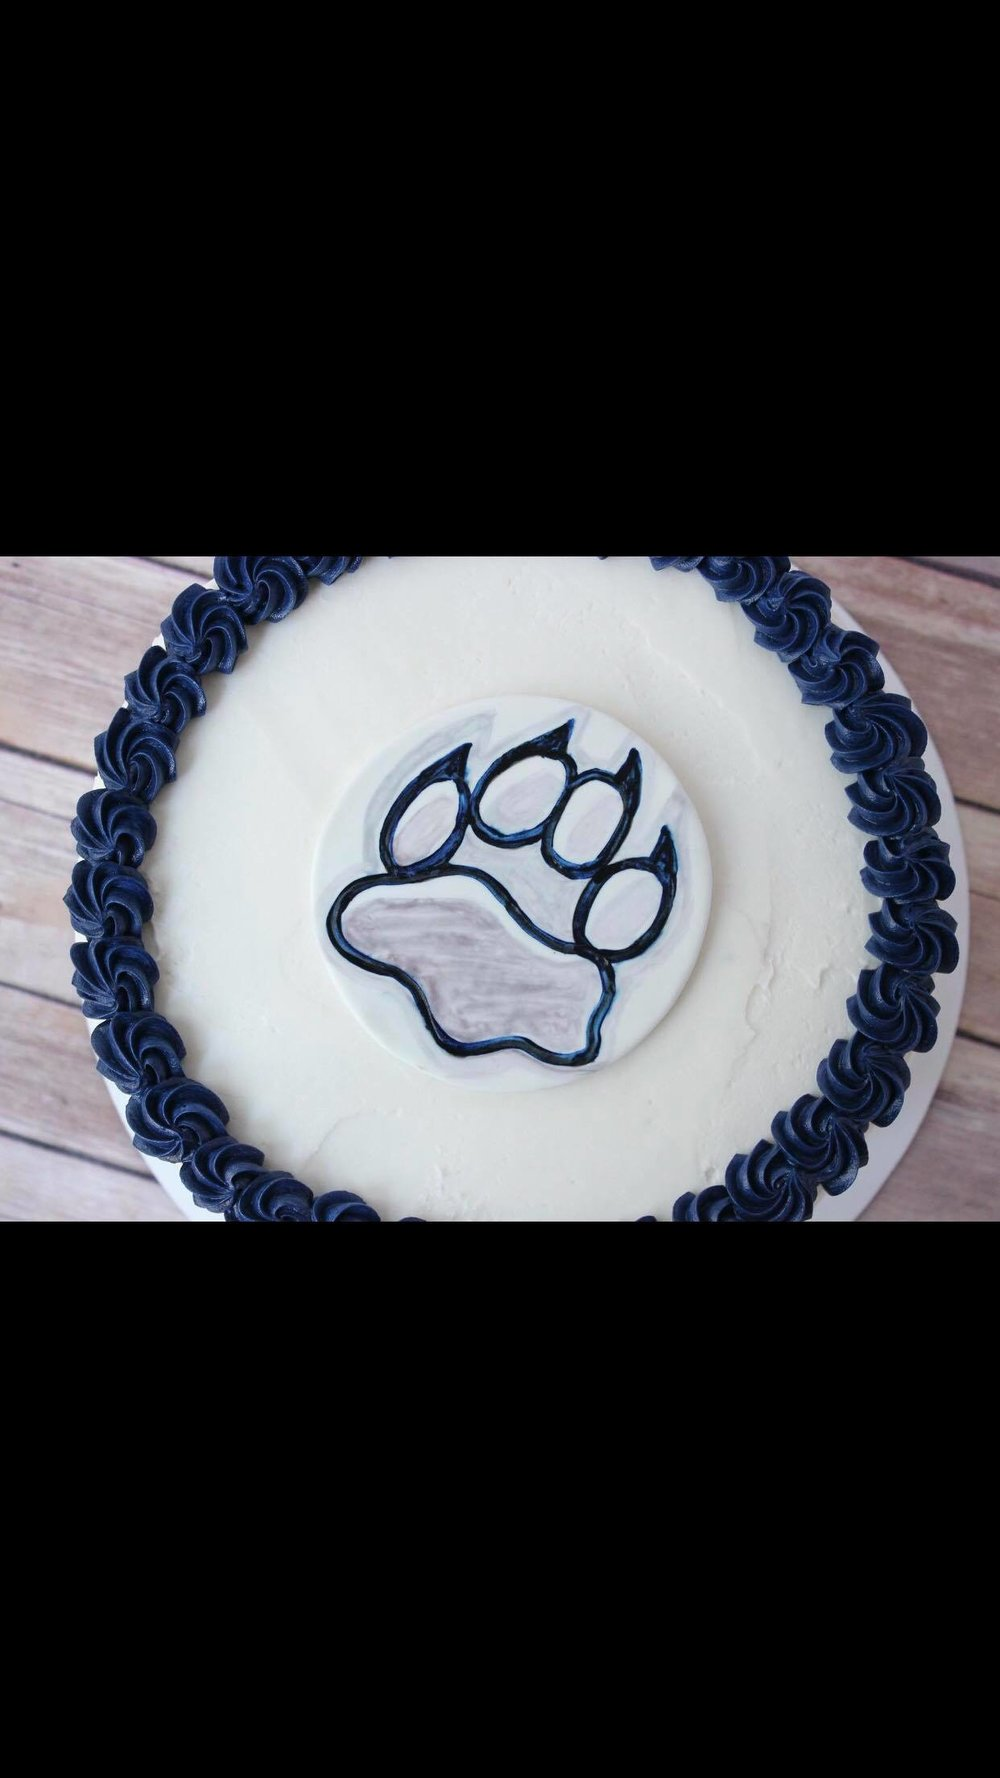 Wildcat Grad Cake - Congratulatory message can be added upon request!!$50 6 inch$60 8 inch$75 9 inch